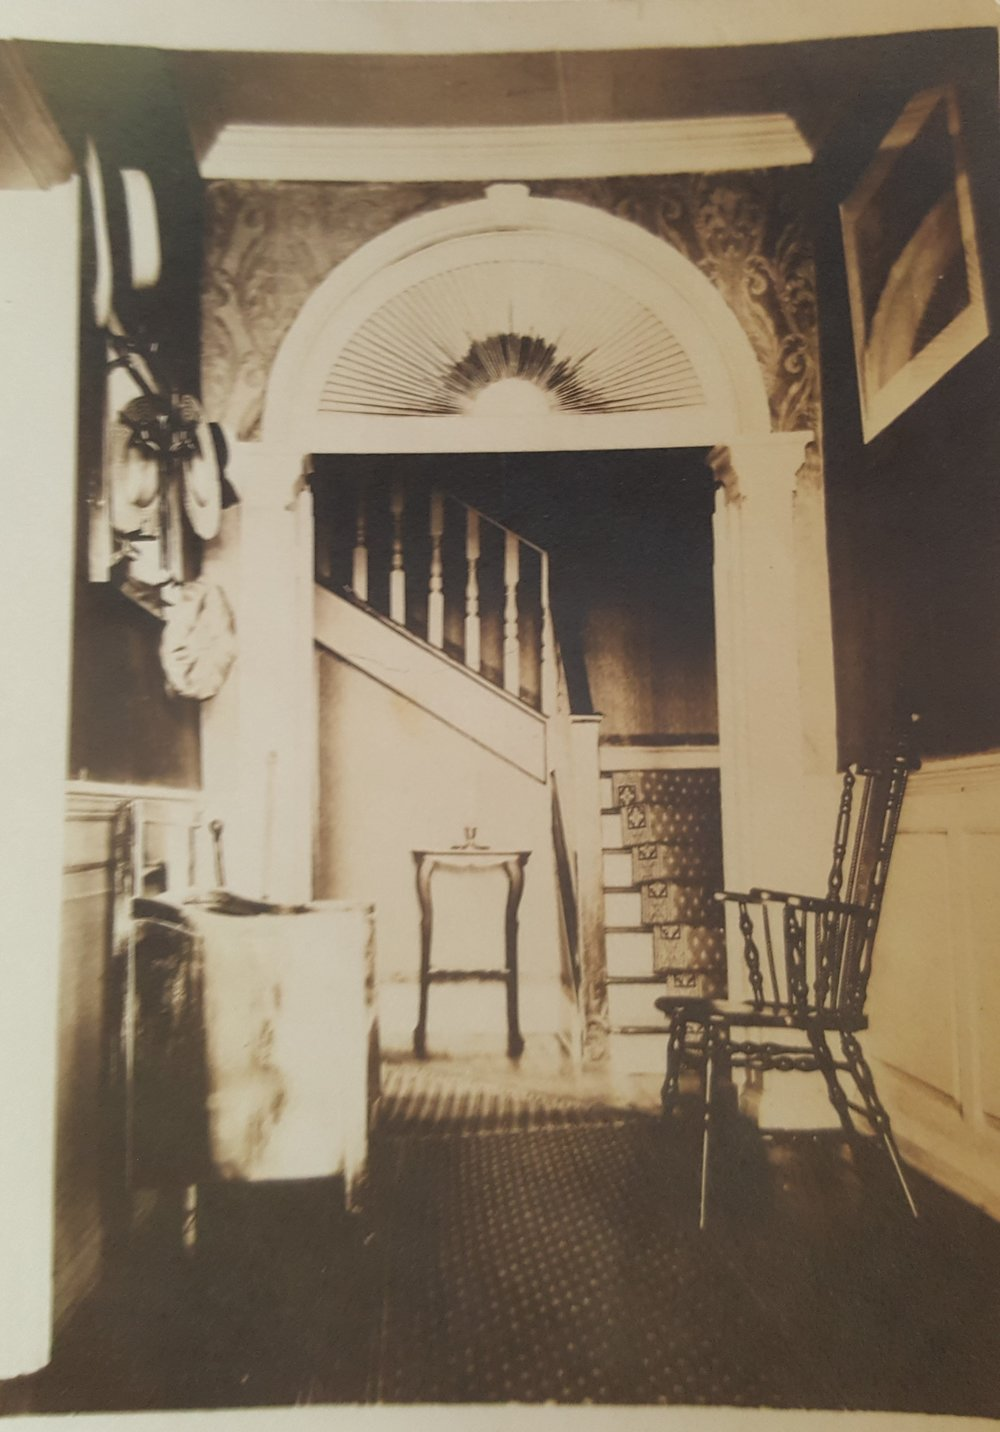 Pipin Photos undated interior.jpg